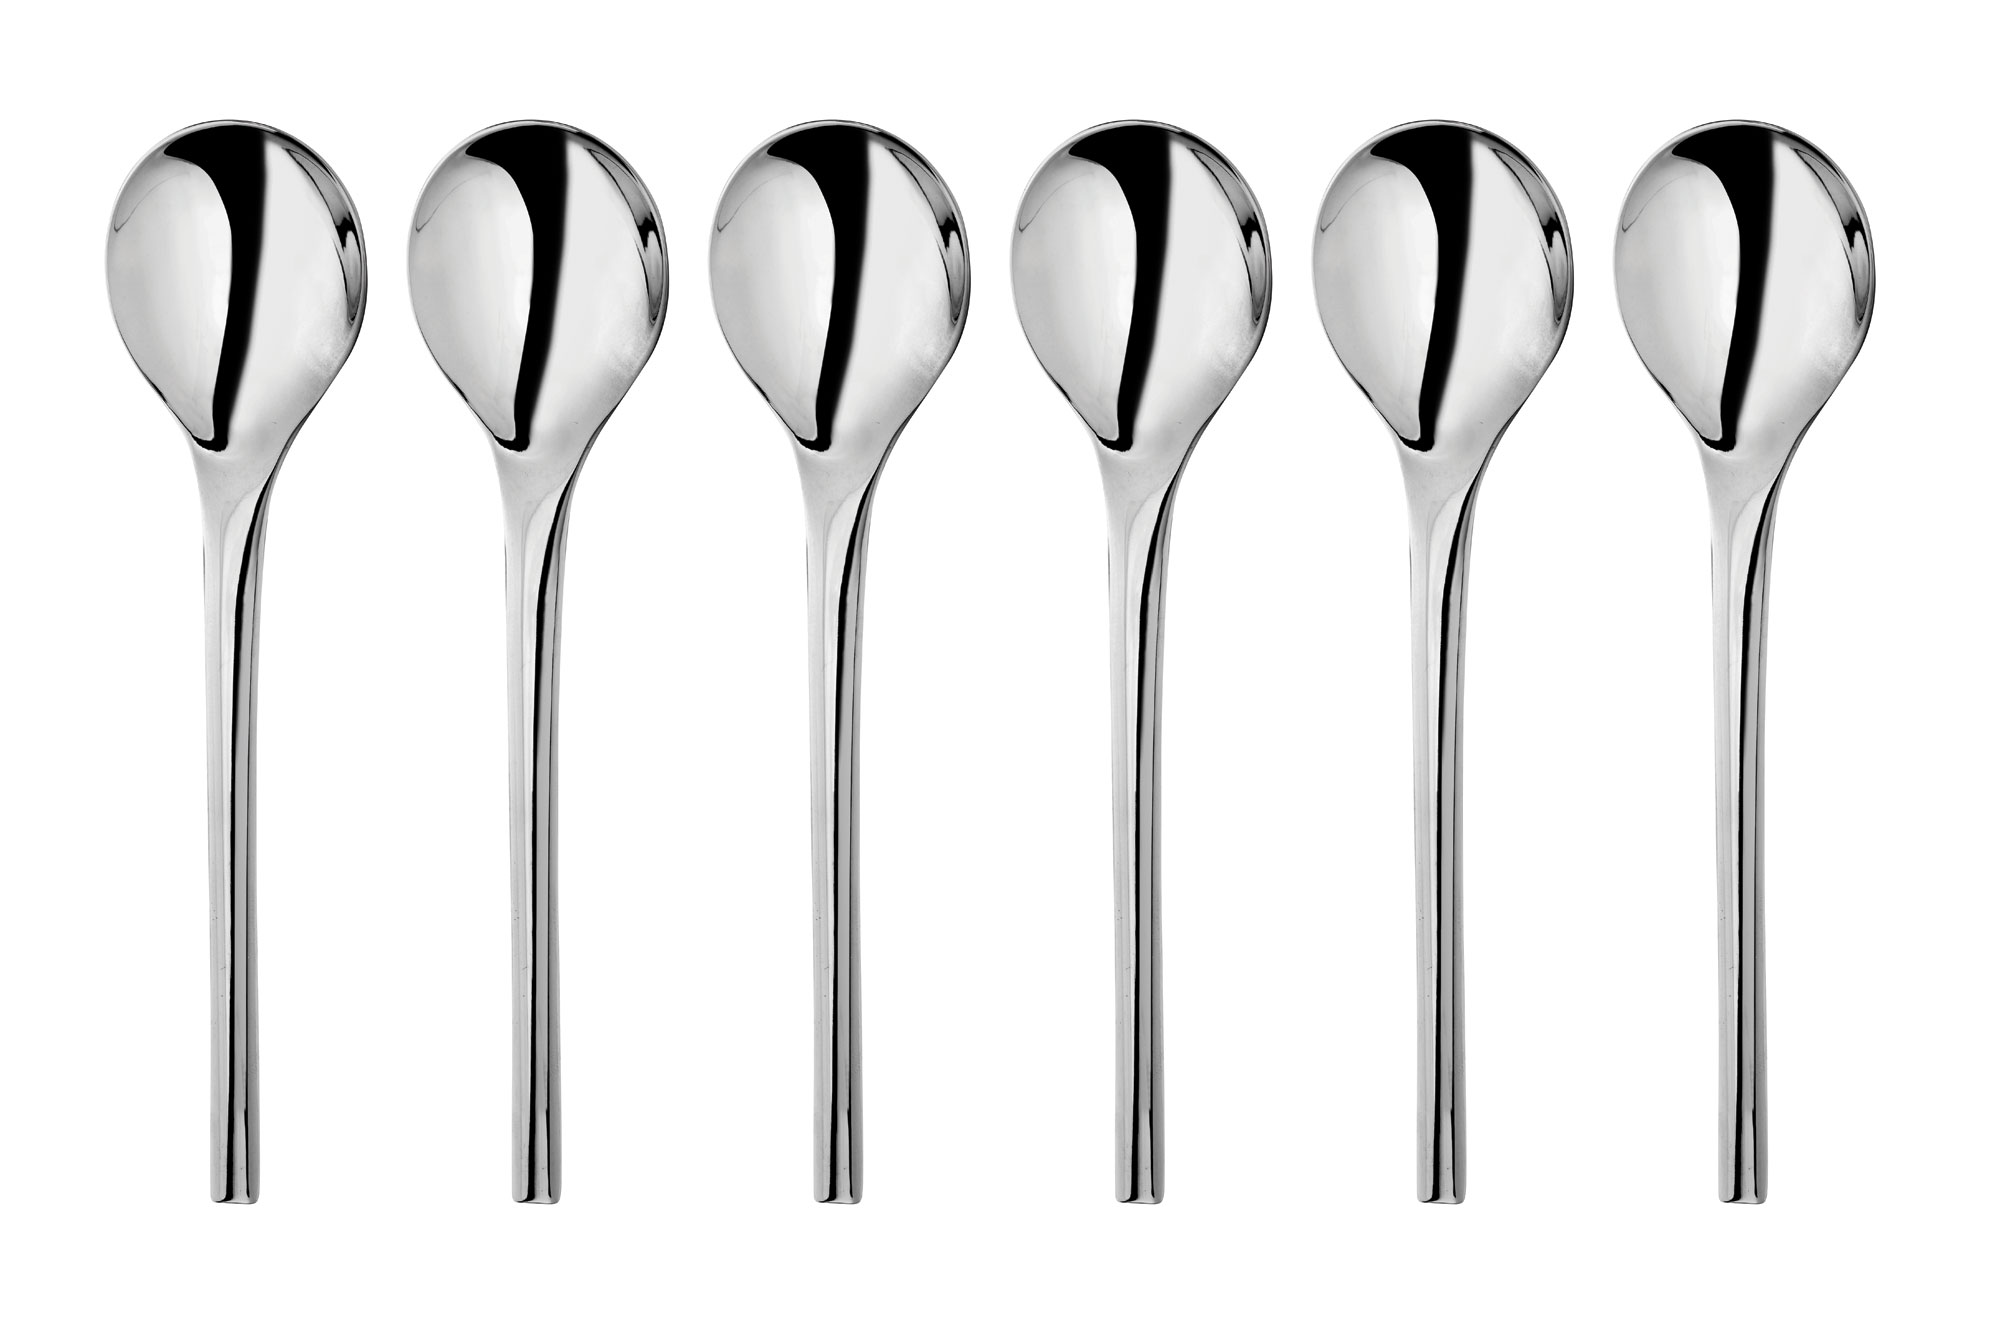 Wmf Nordic Stainless Steel Soup Spoon Set 6 Piece